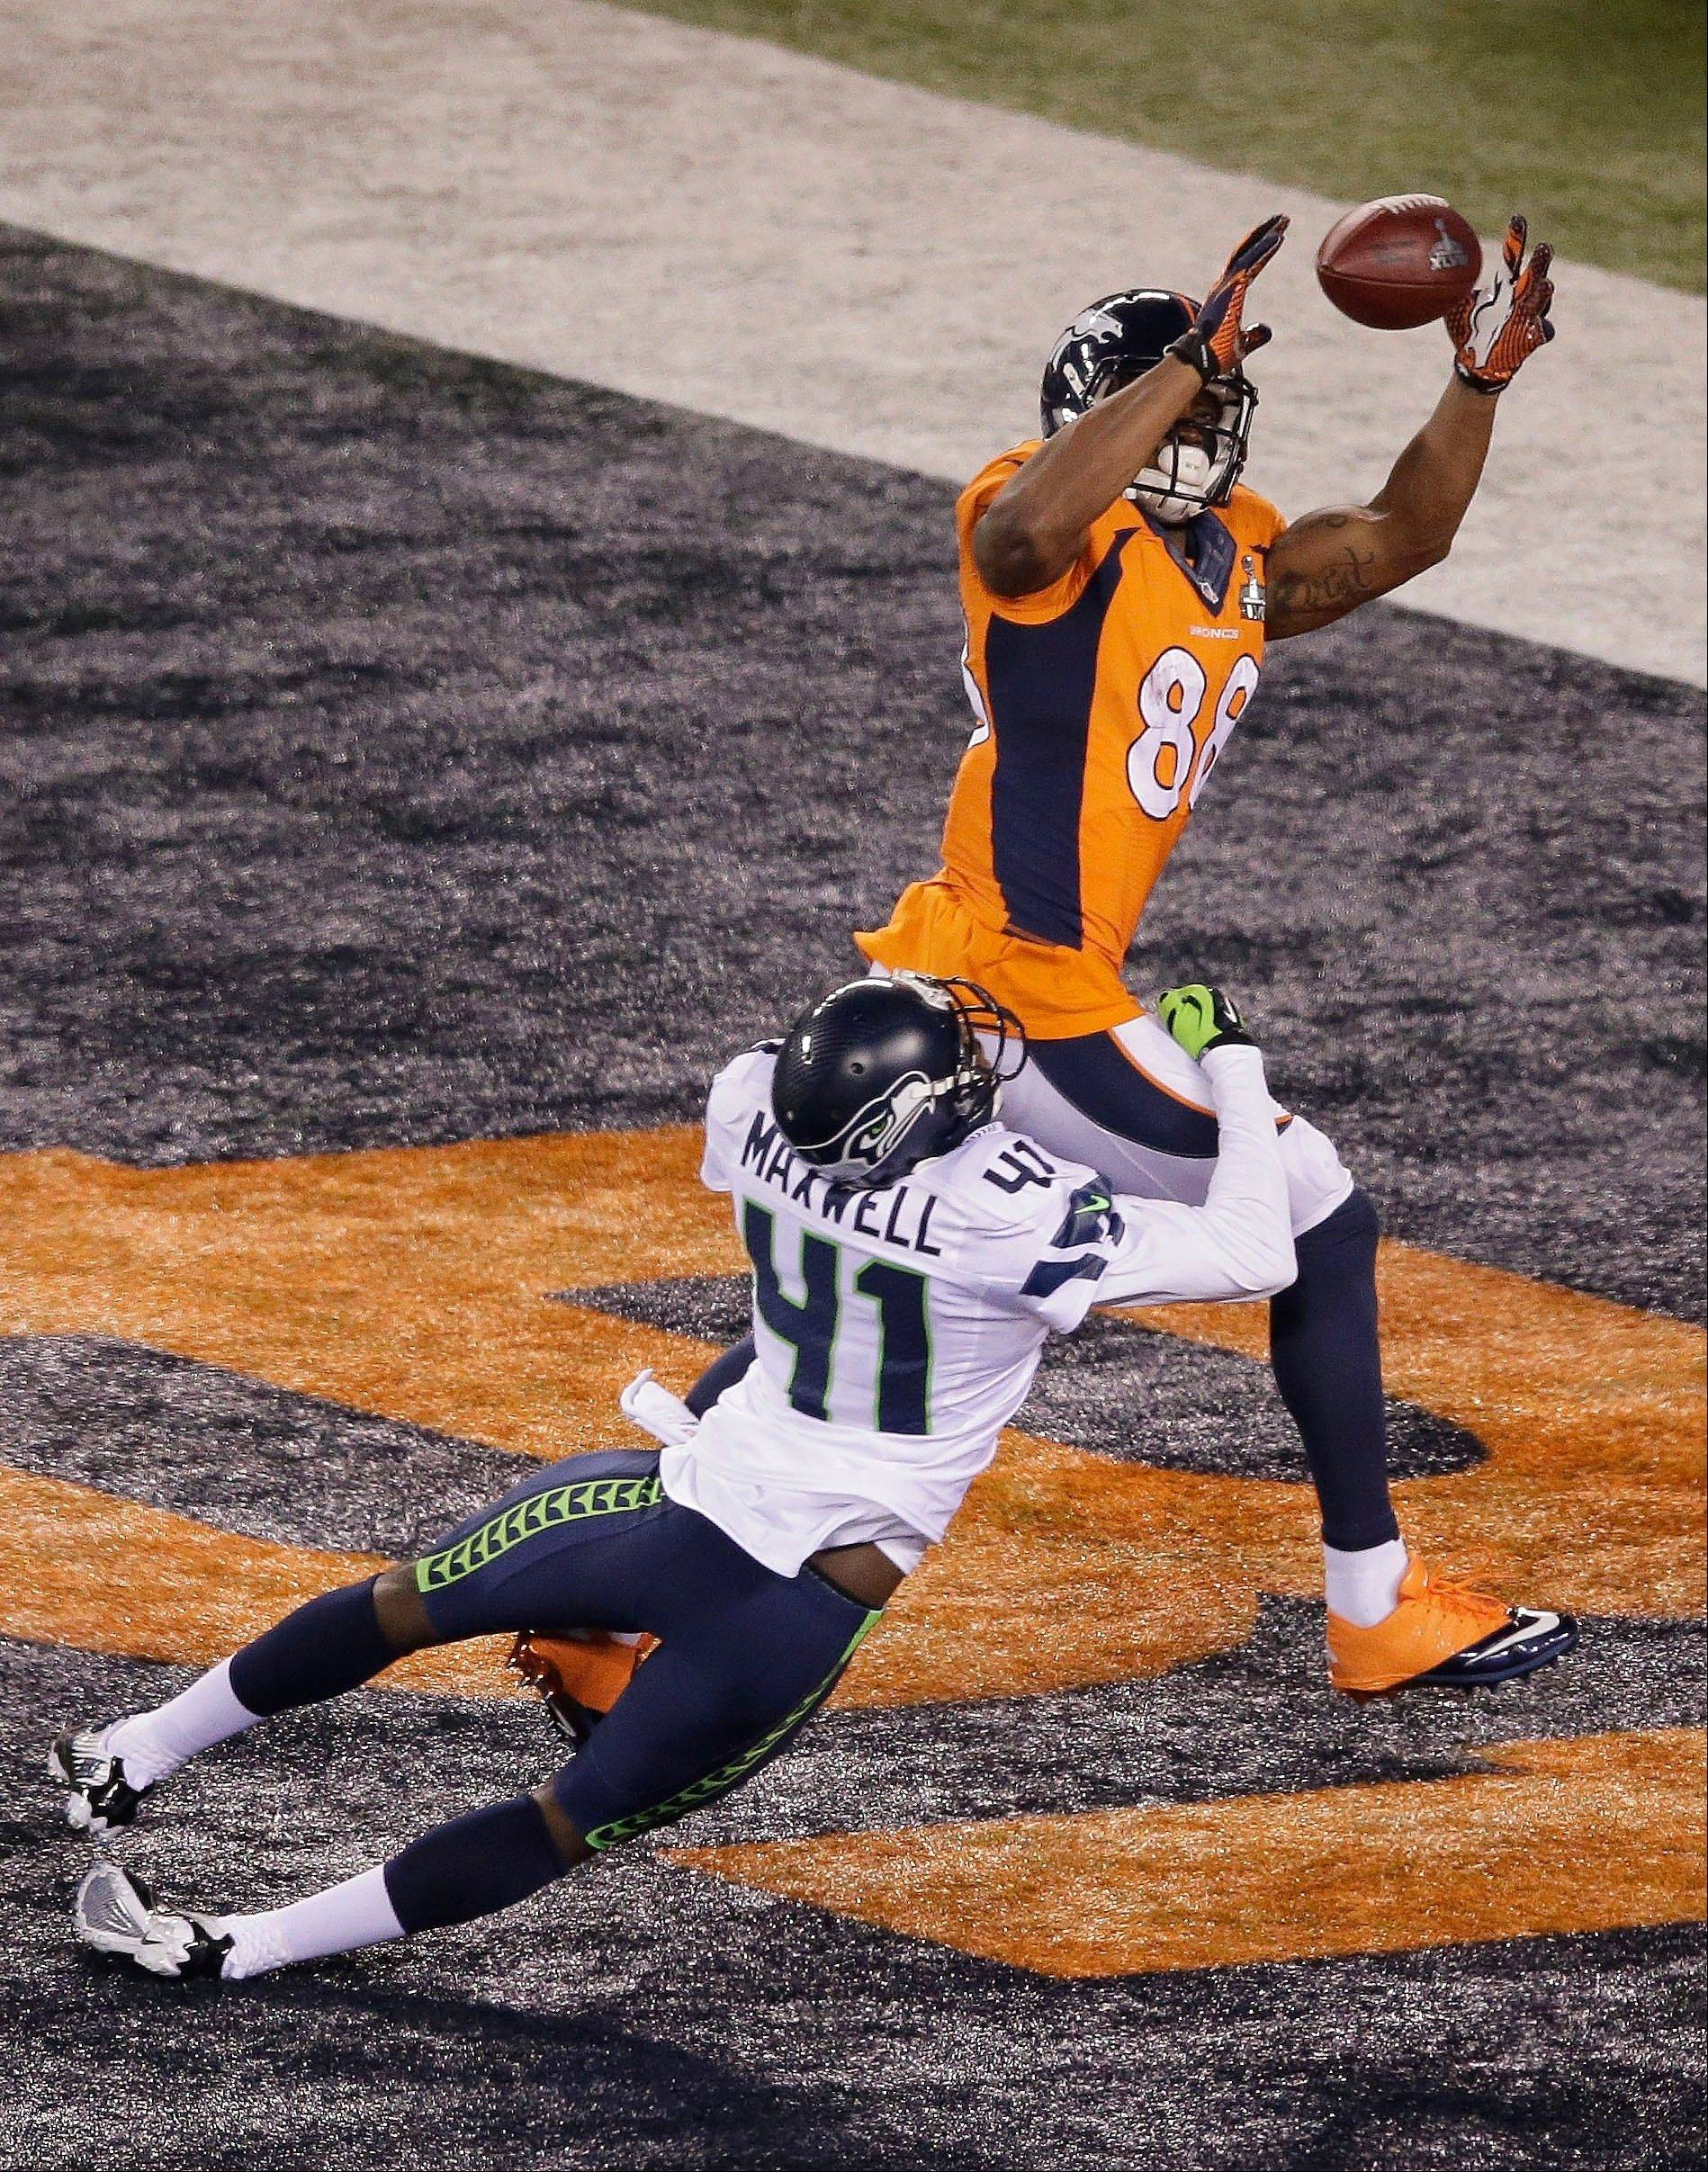 Denver Broncos' Demaryius Thomas makes the catch for a touchdown against Seattle Seahawks' Byron Maxwell during the second half.